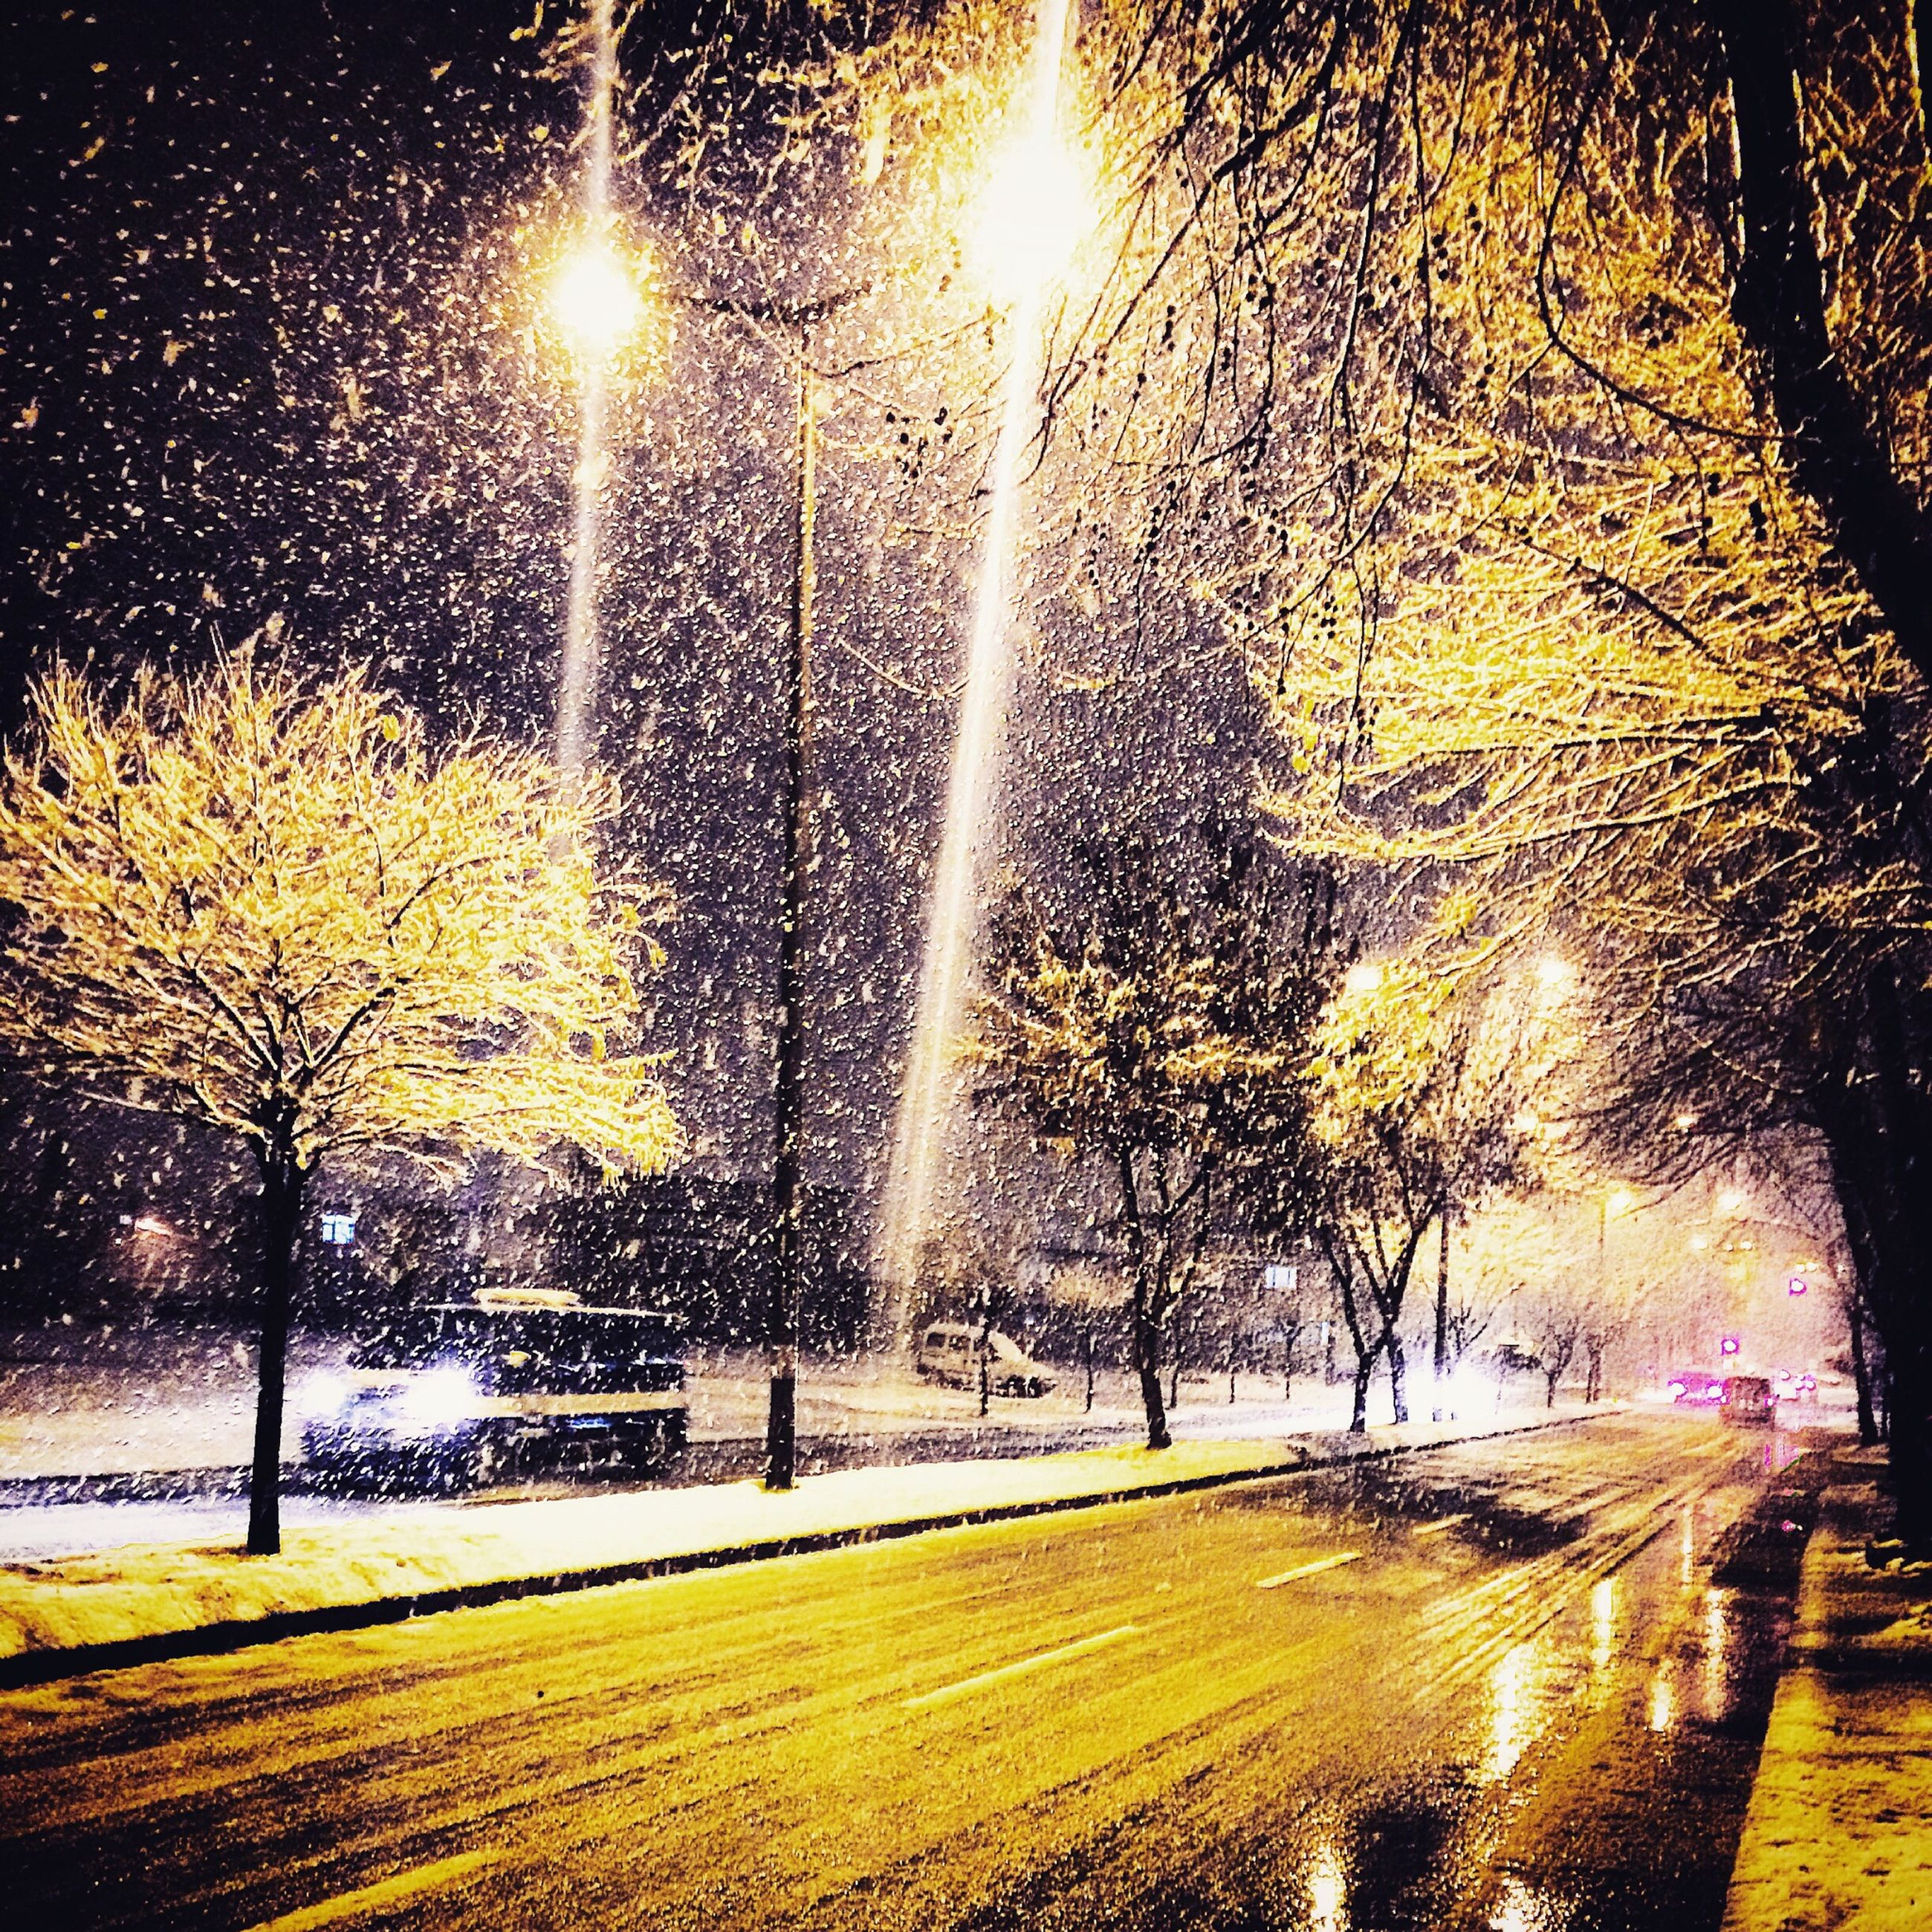 season, tree, snow, winter, cold temperature, weather, bare tree, street, street light, road, illuminated, nature, branch, night, park - man made space, transportation, sun, car, tranquility, covering